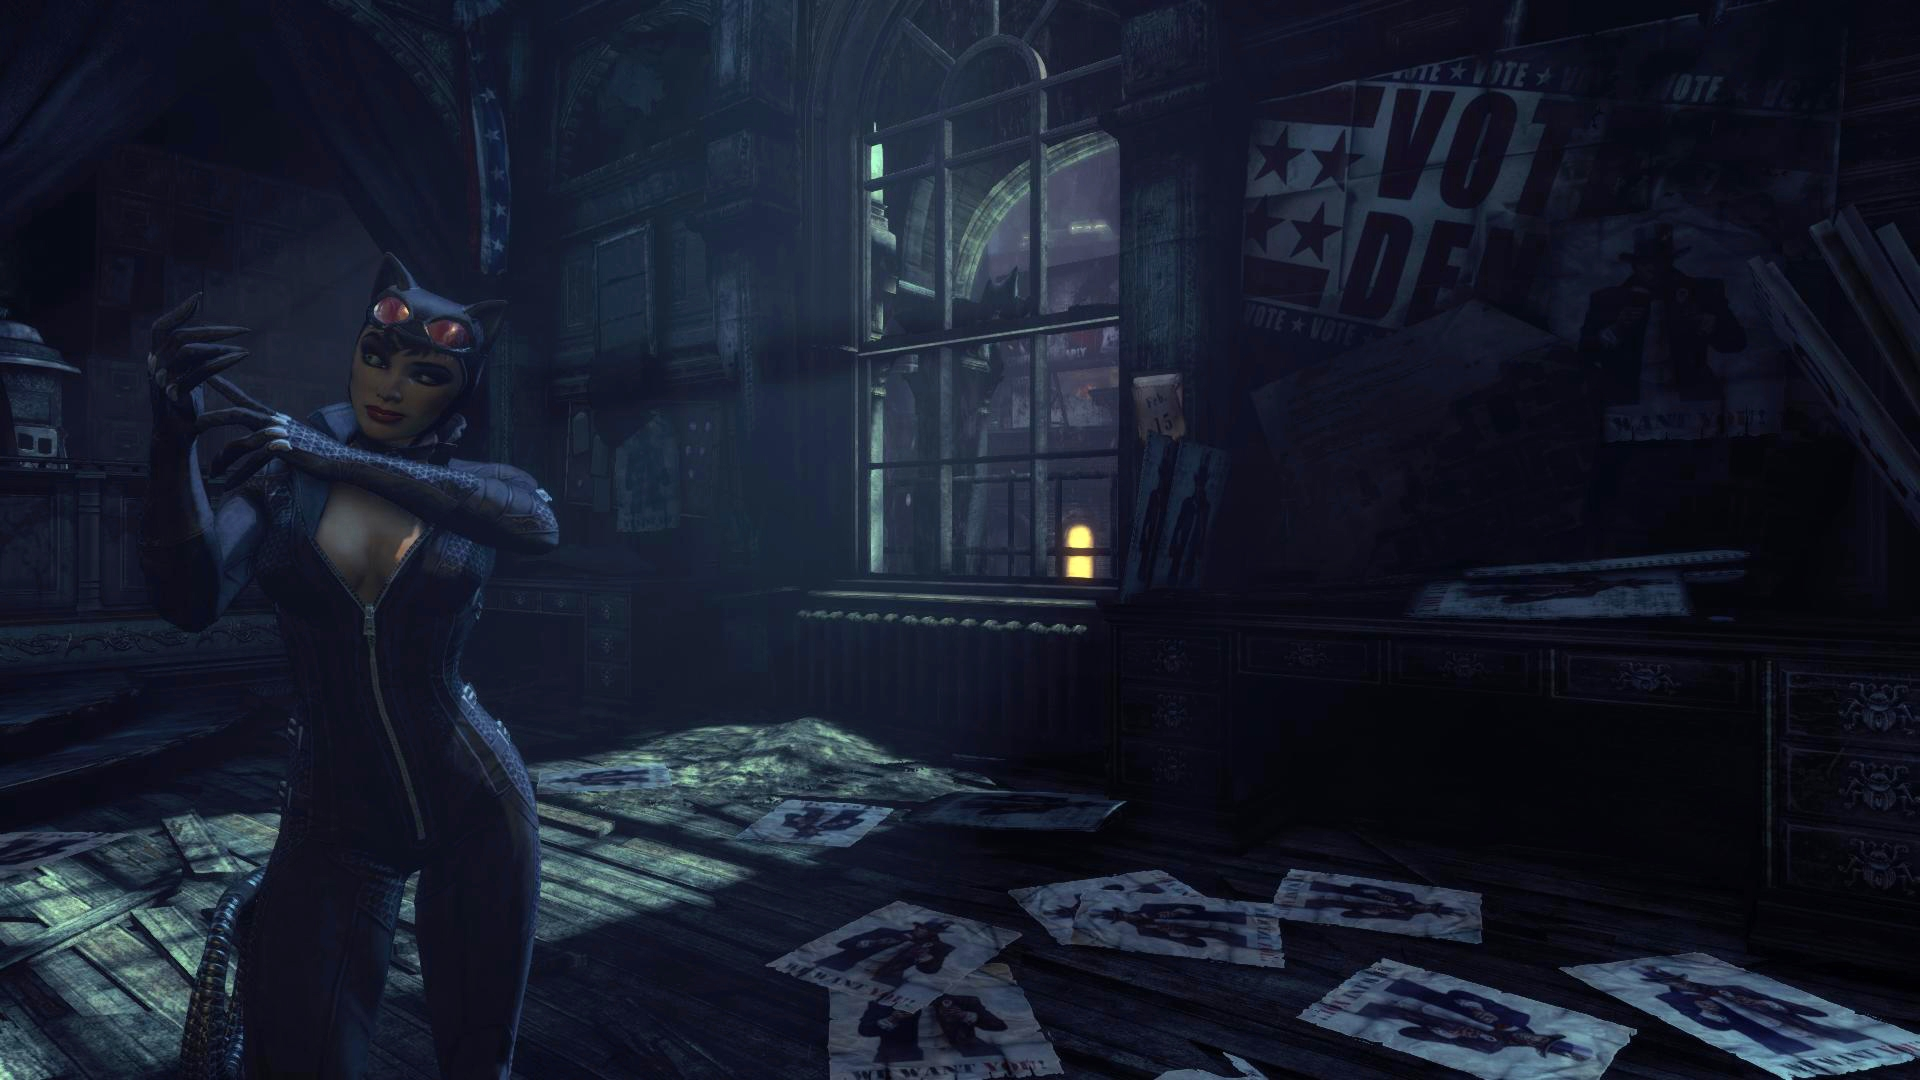 Arkham city cat woman mod nude movies